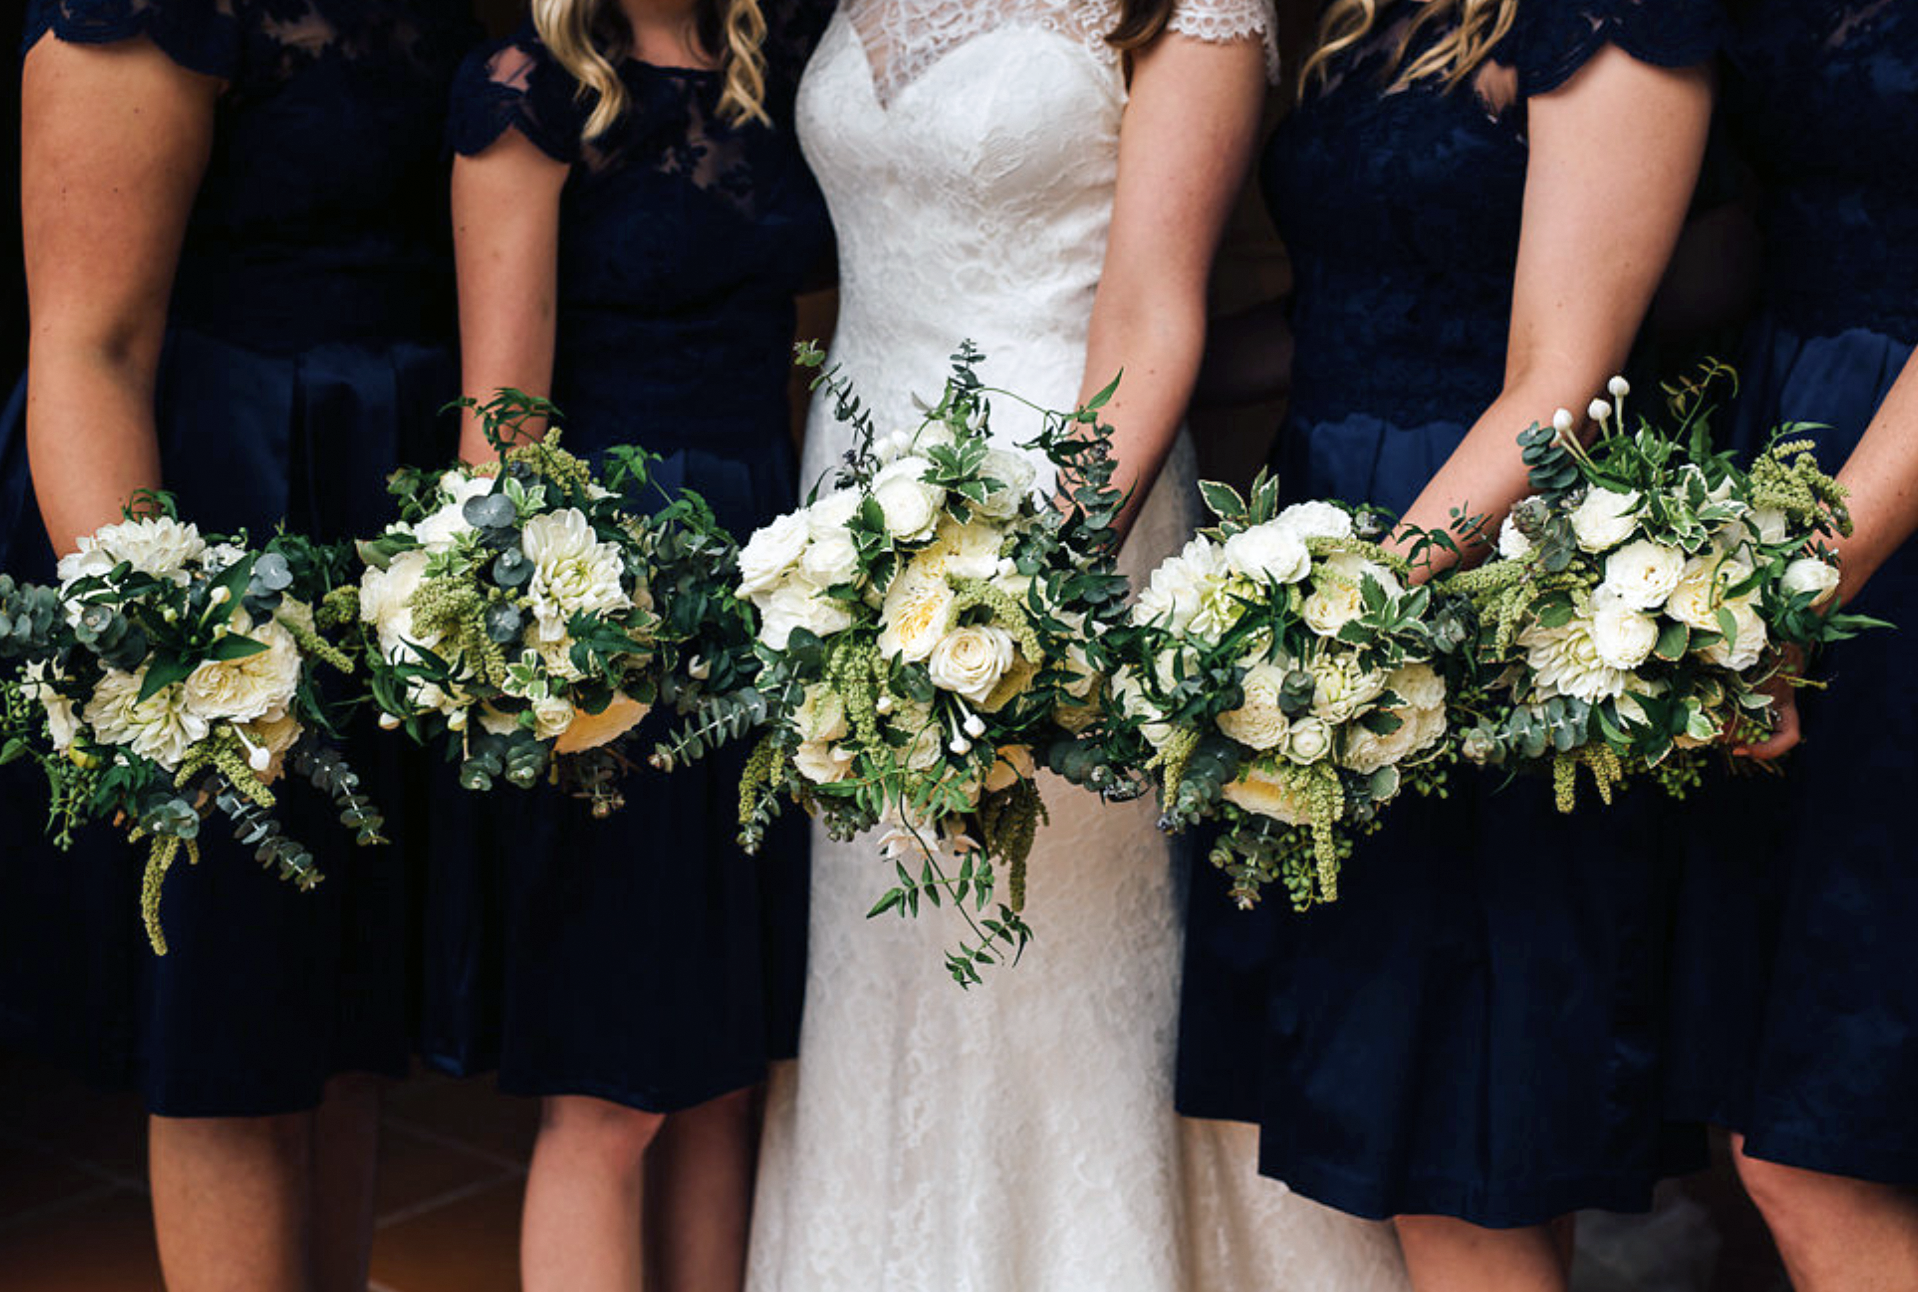 Wild white unstructured bouquets